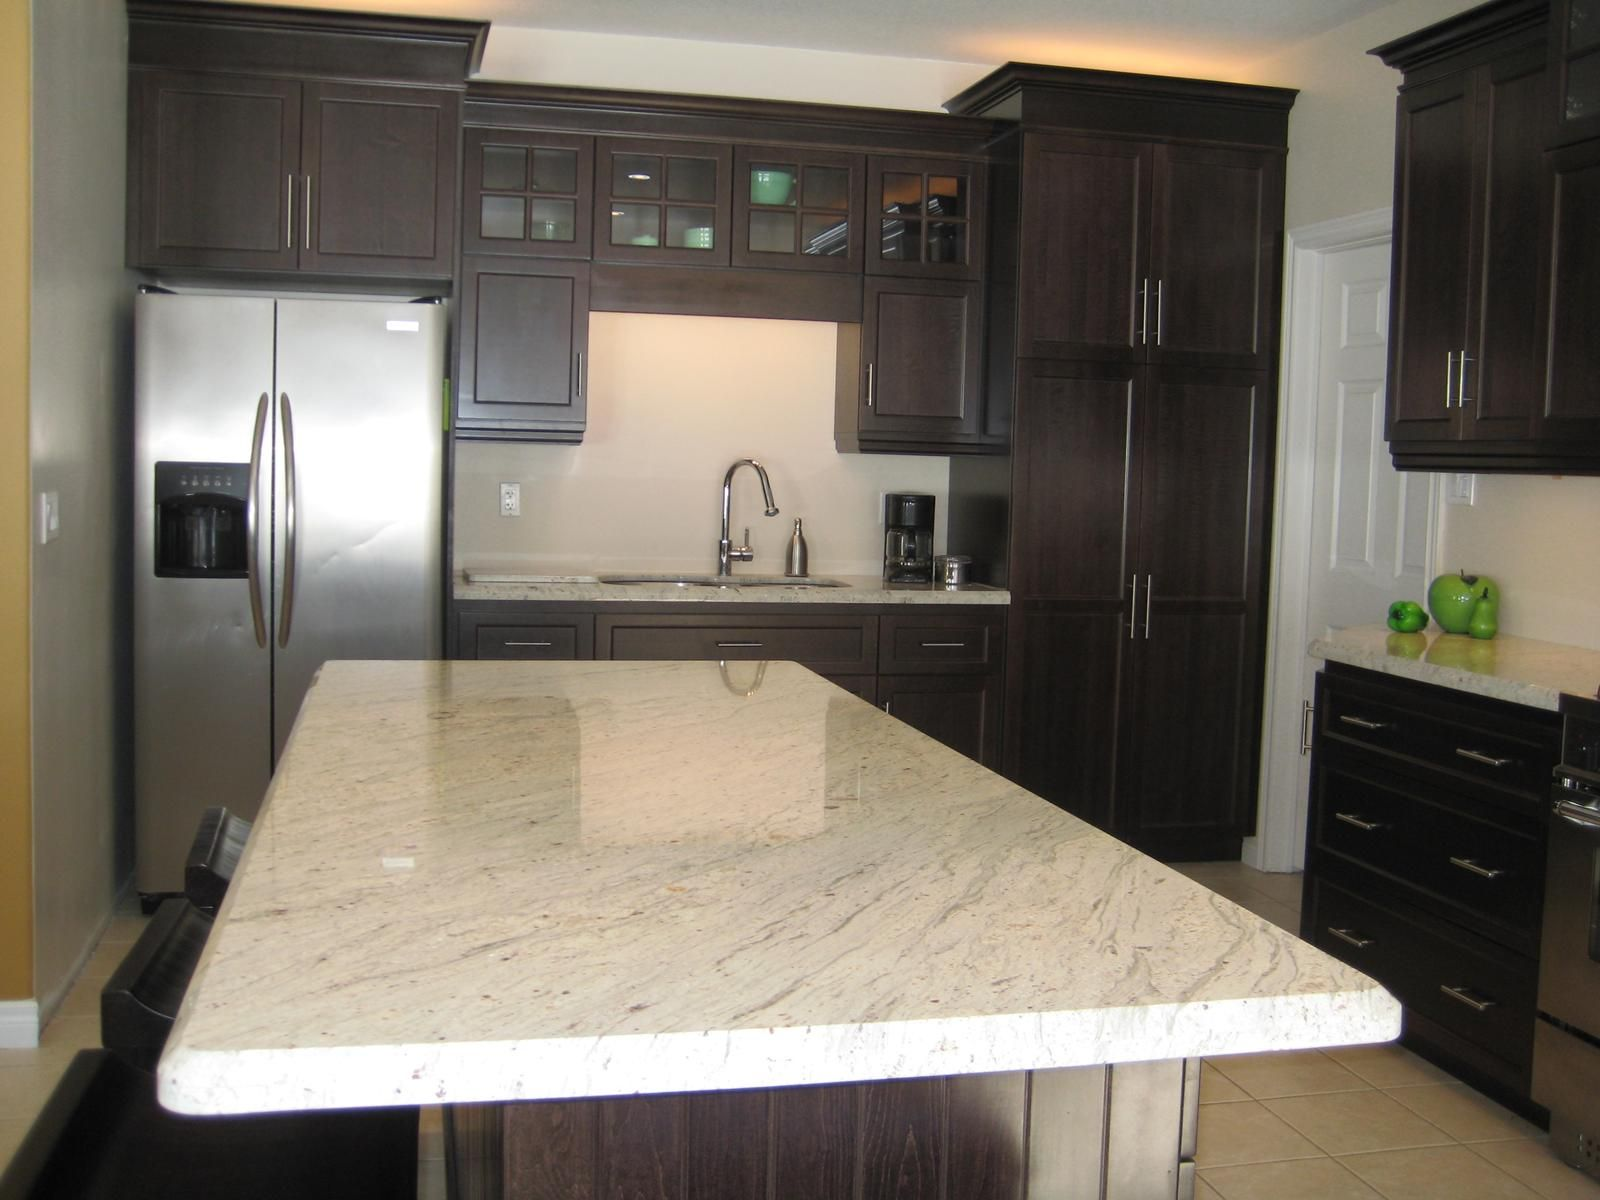 River White Granite Countertops - GraniteImpressions.net | Living ...